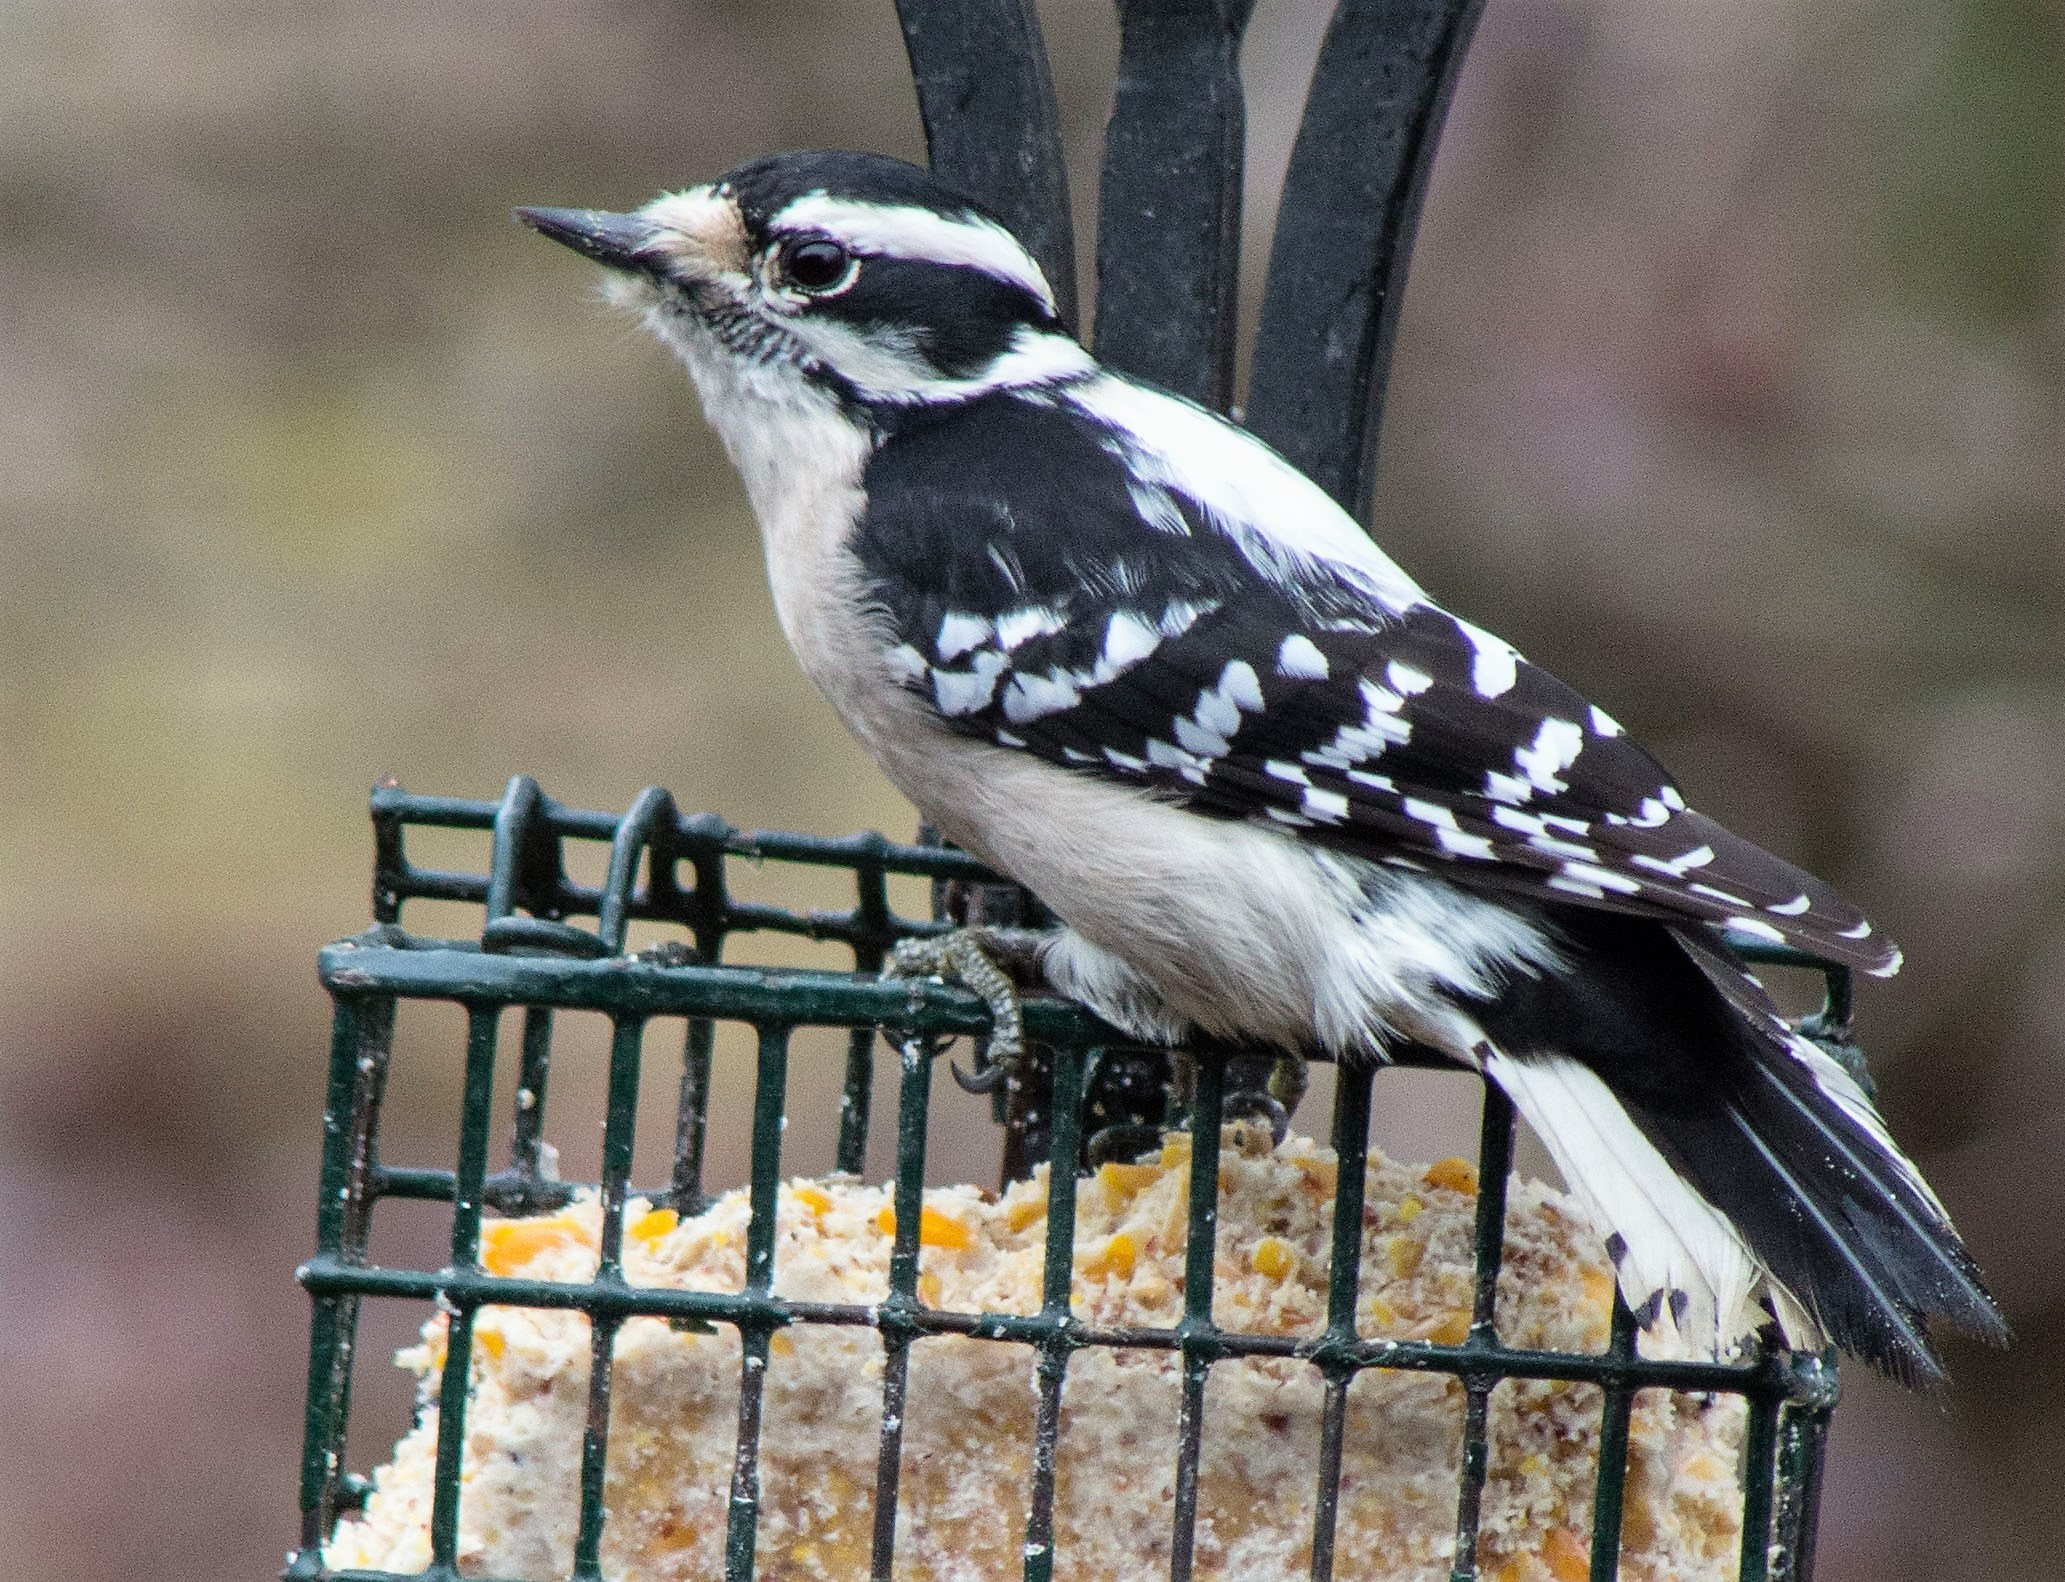 Downy – Smaller size and delicate beaks distinguish downy from hairy woodpeckers.  Otherwise, the two are very similar.